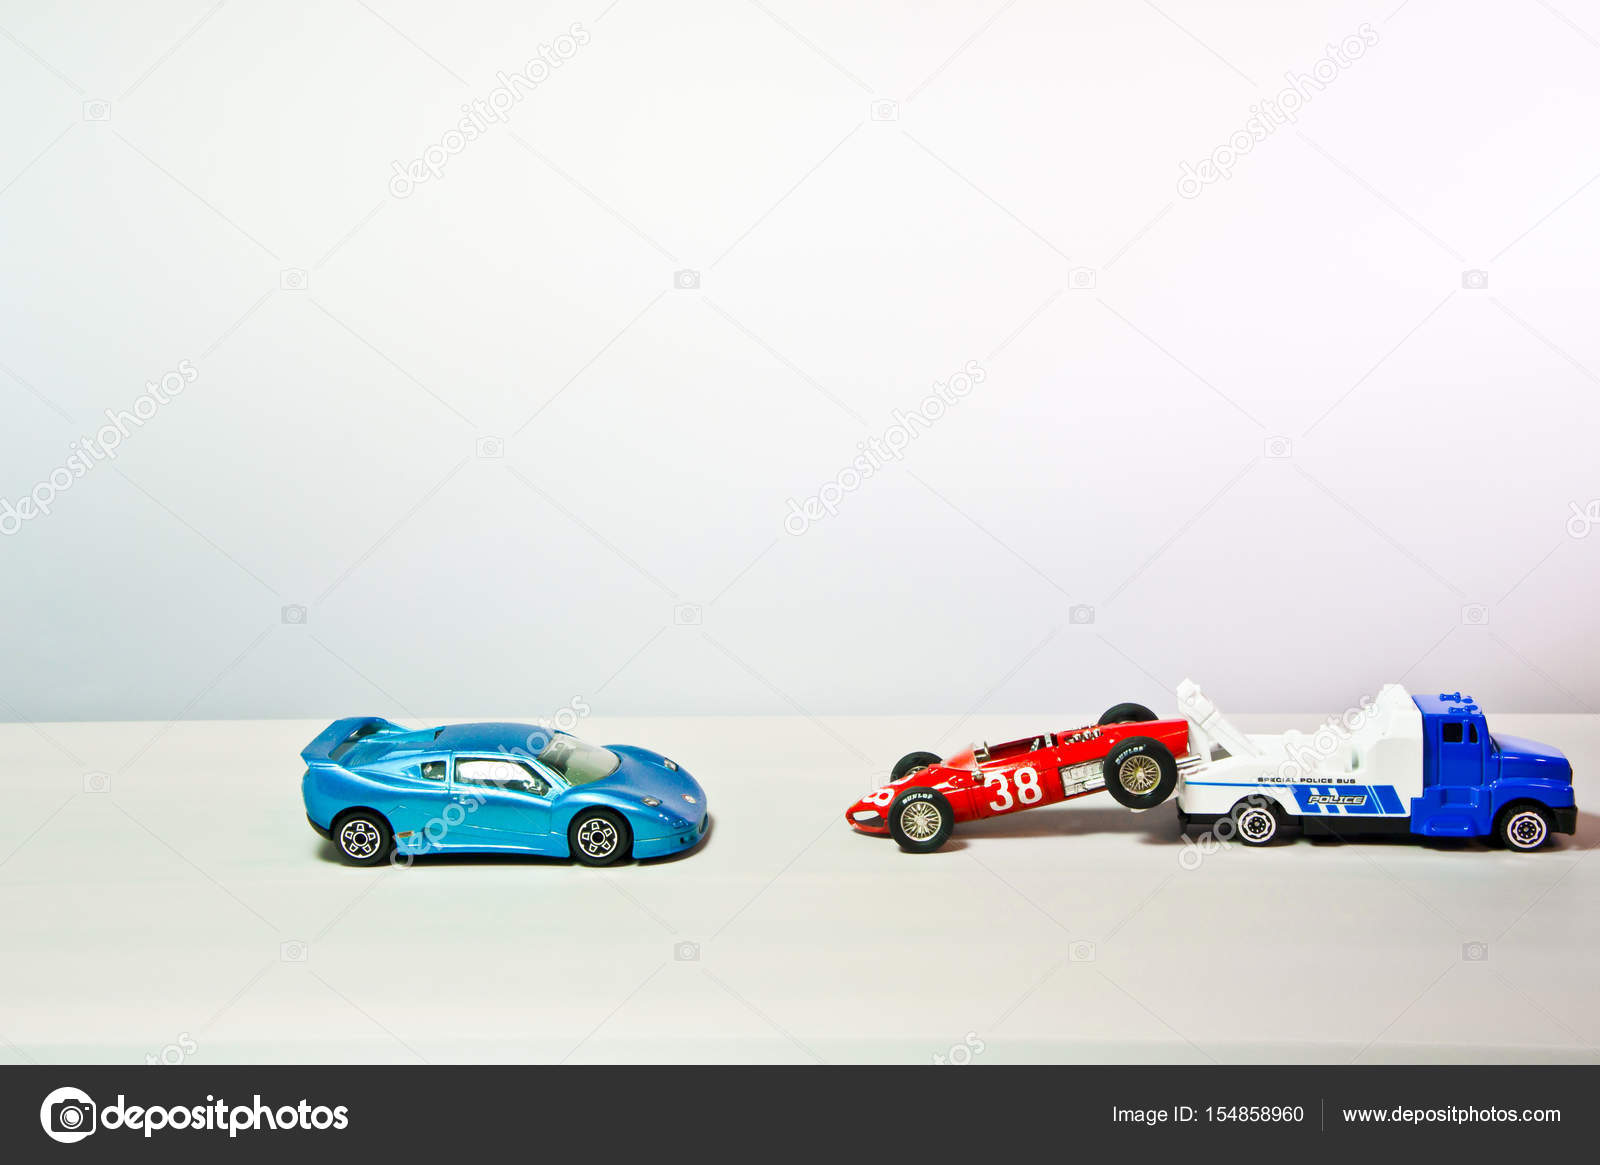 Merveilleux Iu0027m Taking The Red Sport Toy Car To The Police. U2014 Stock  Photo